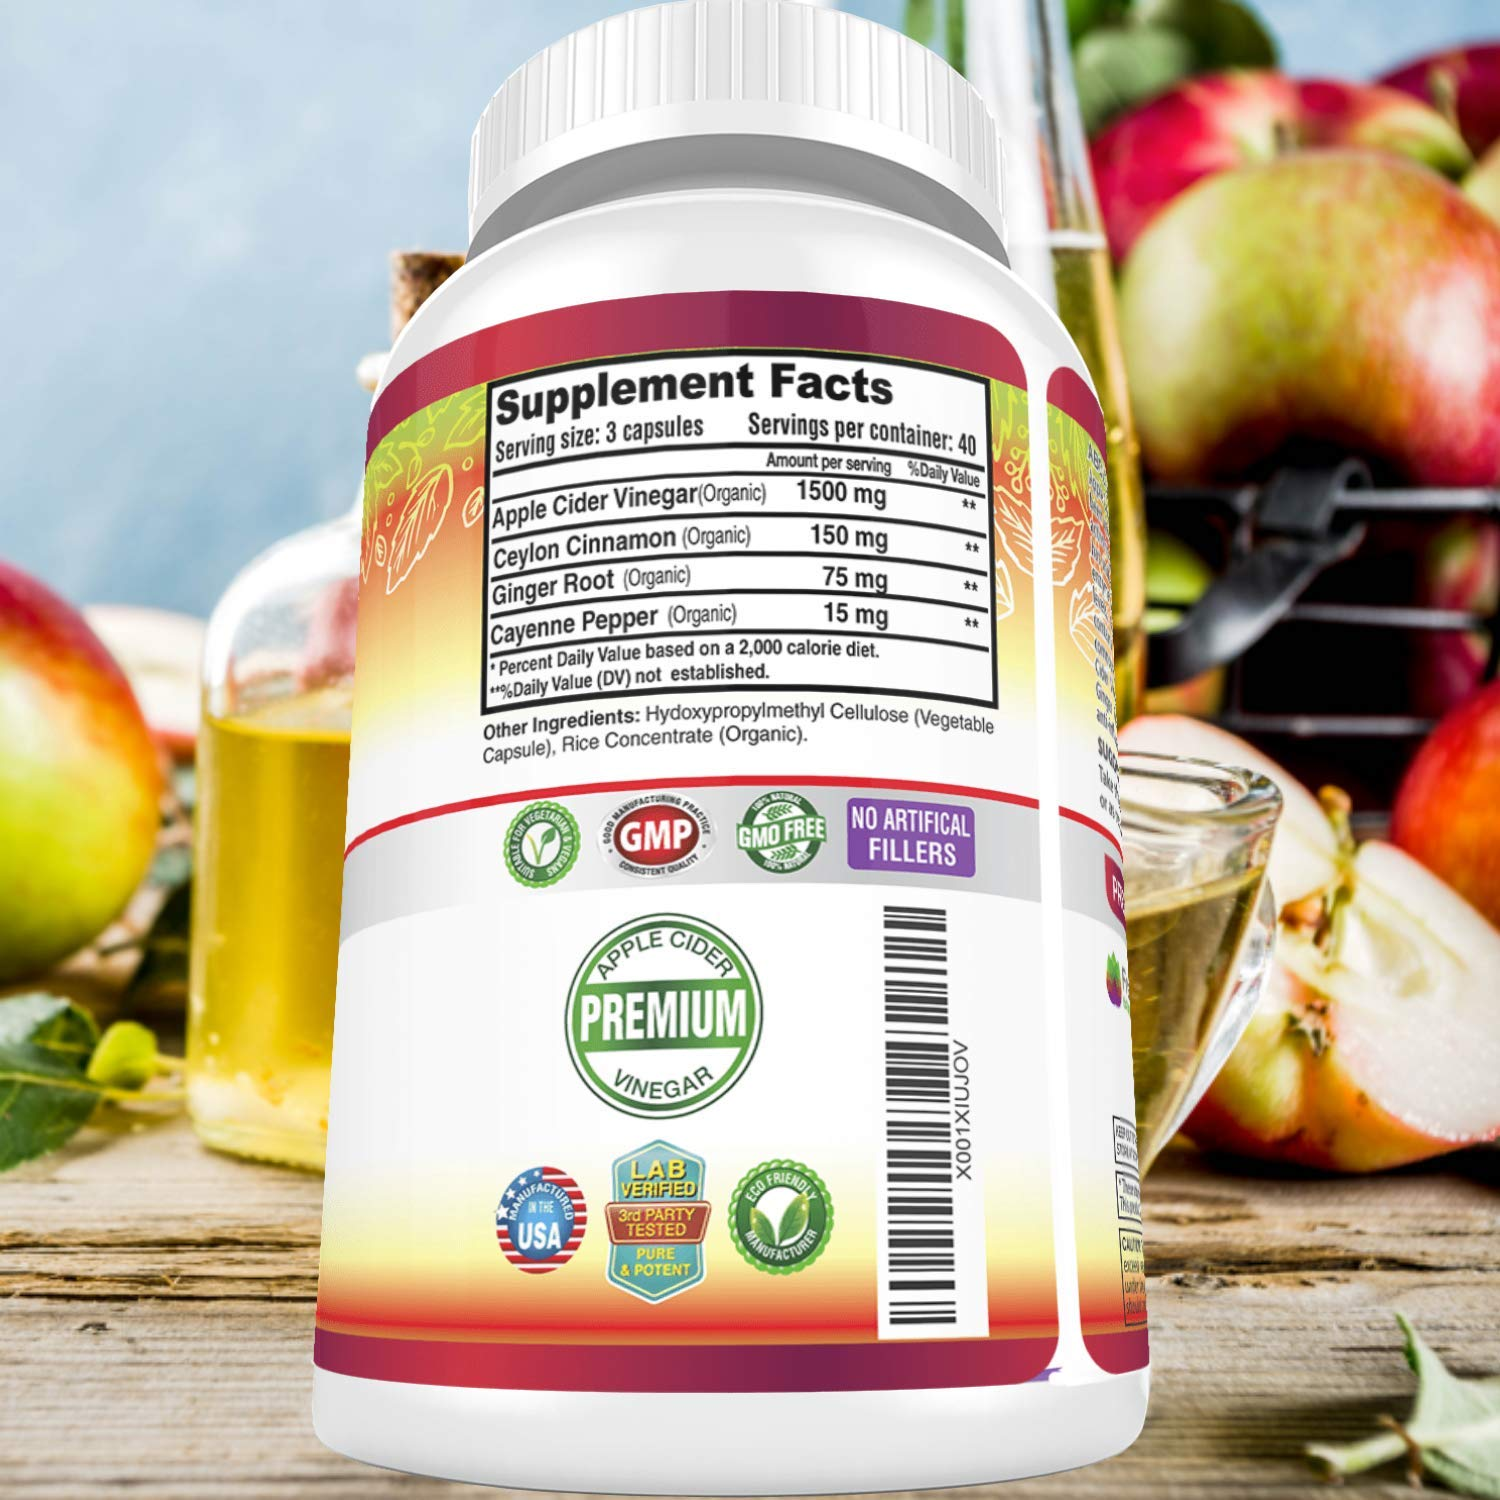 Organic Apple Cider Vinegar Pills Max 1740mg with Mother - 100% Natural & Raw with Ceylon Cinnamon, Ginger & Cayenne Pepper - Ideal for Healthy Blood Sugar, Detox & Digestion-120 Vegan Capsules by FRESH HEALTHCARE (Image #6)